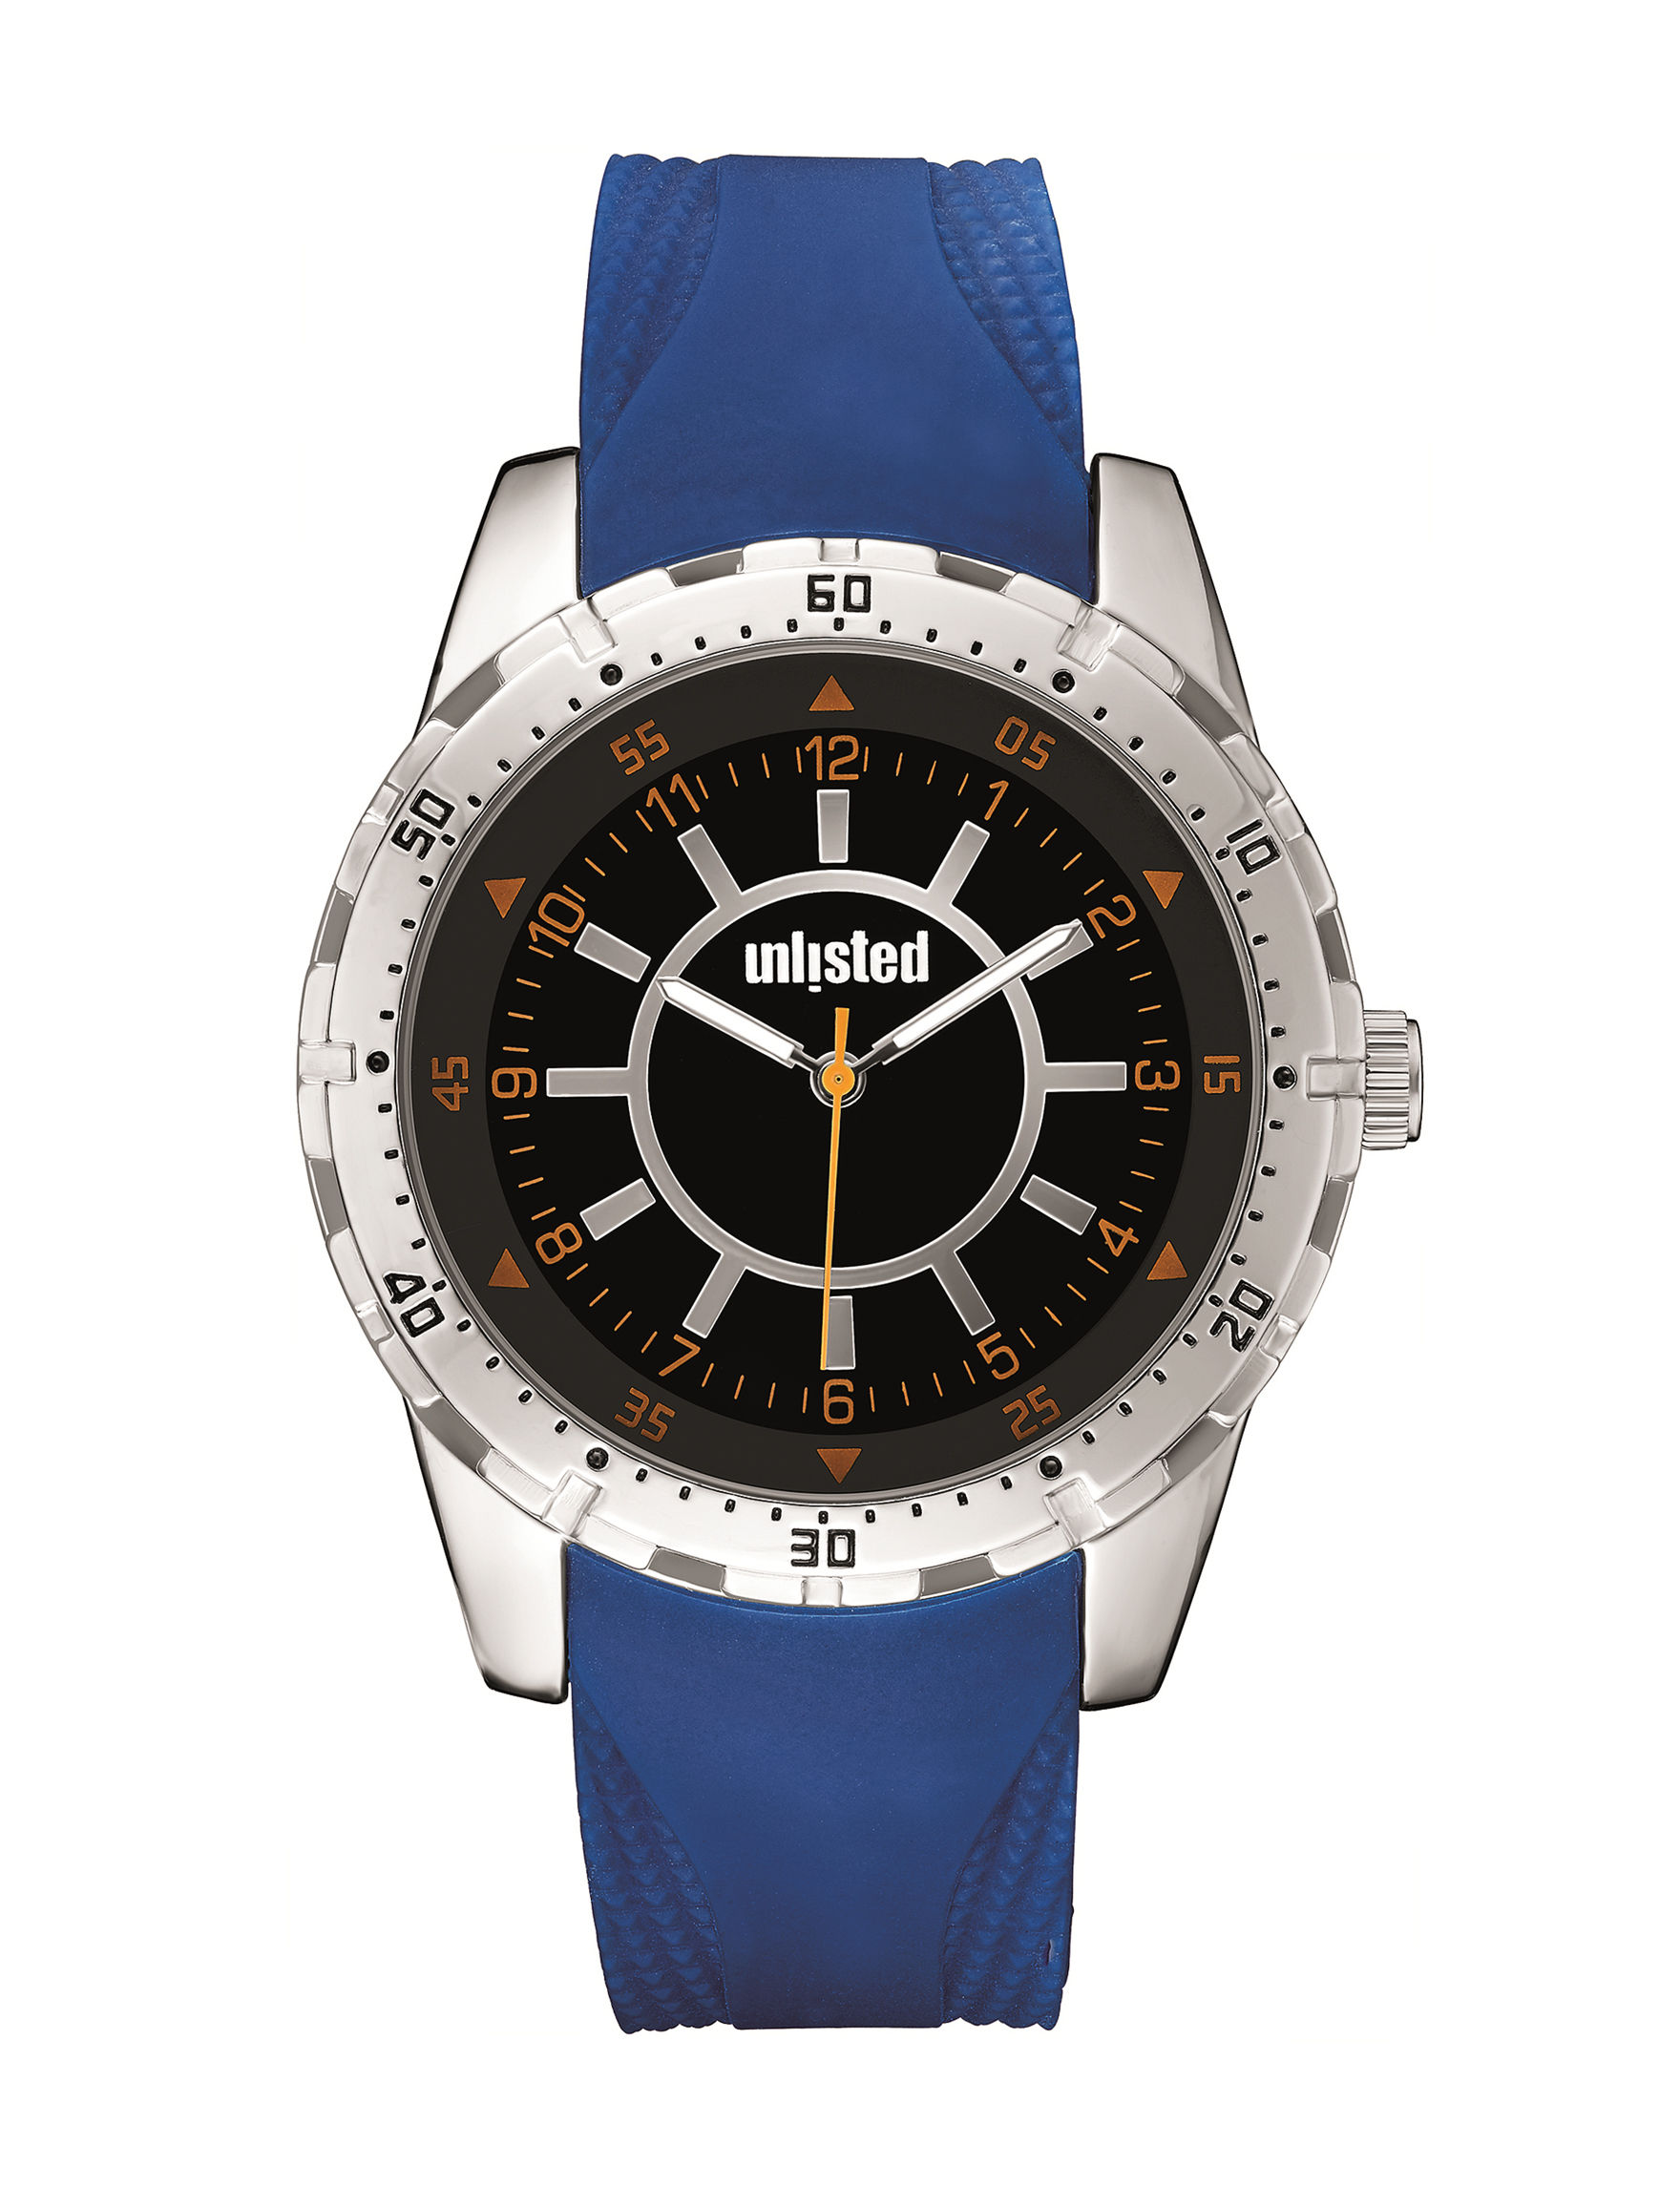 Unlisted Clear Fashion Watches